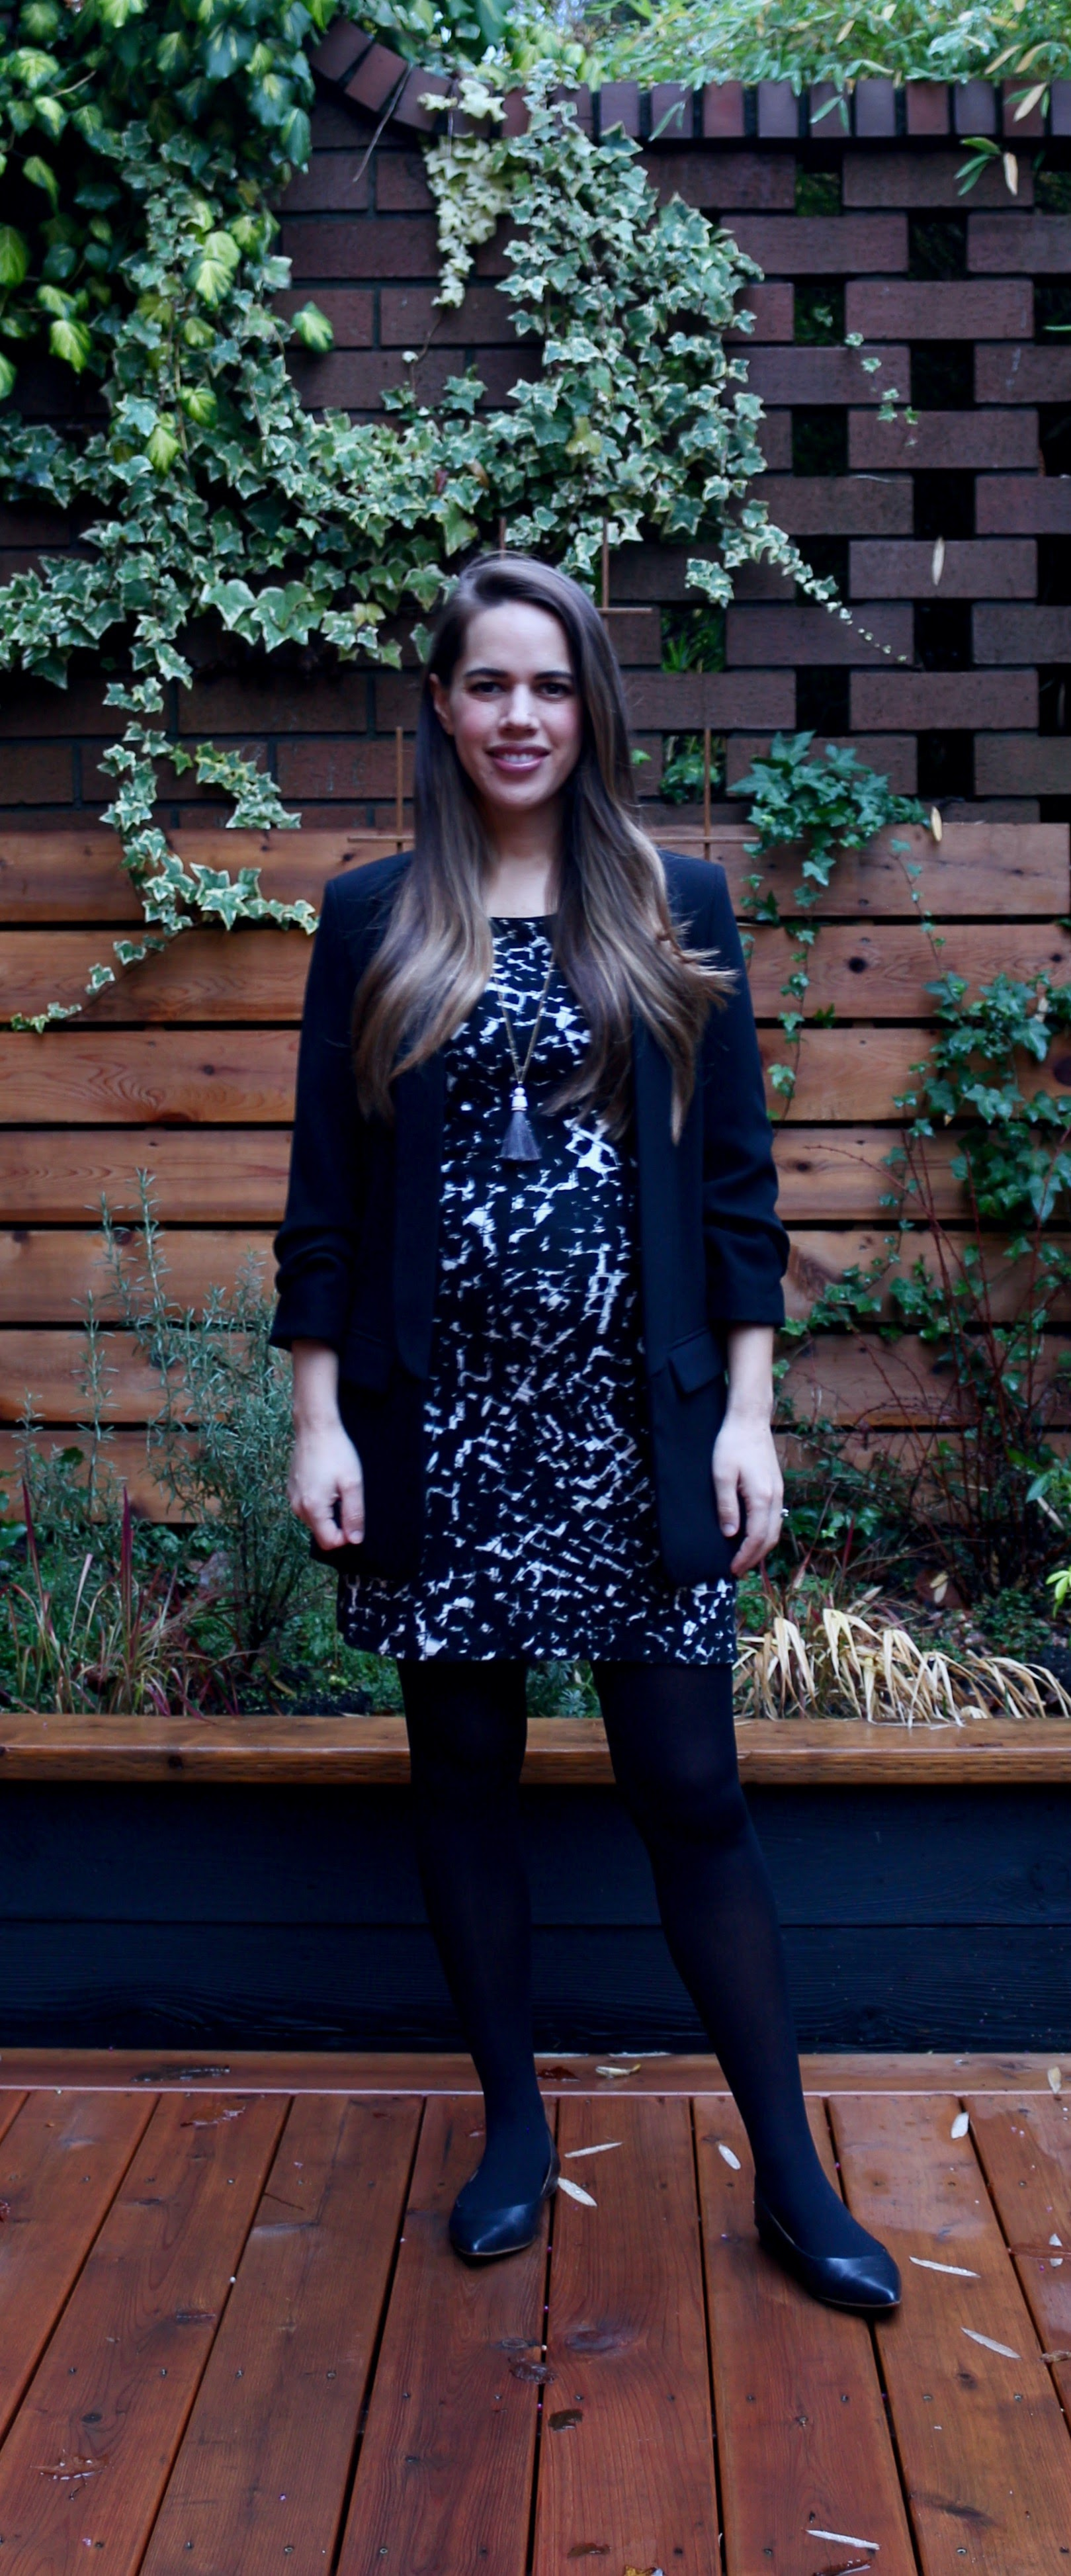 Jules in Flats - Knit Mini Dress with Blazer (Business Casual Workwear on a Budget)